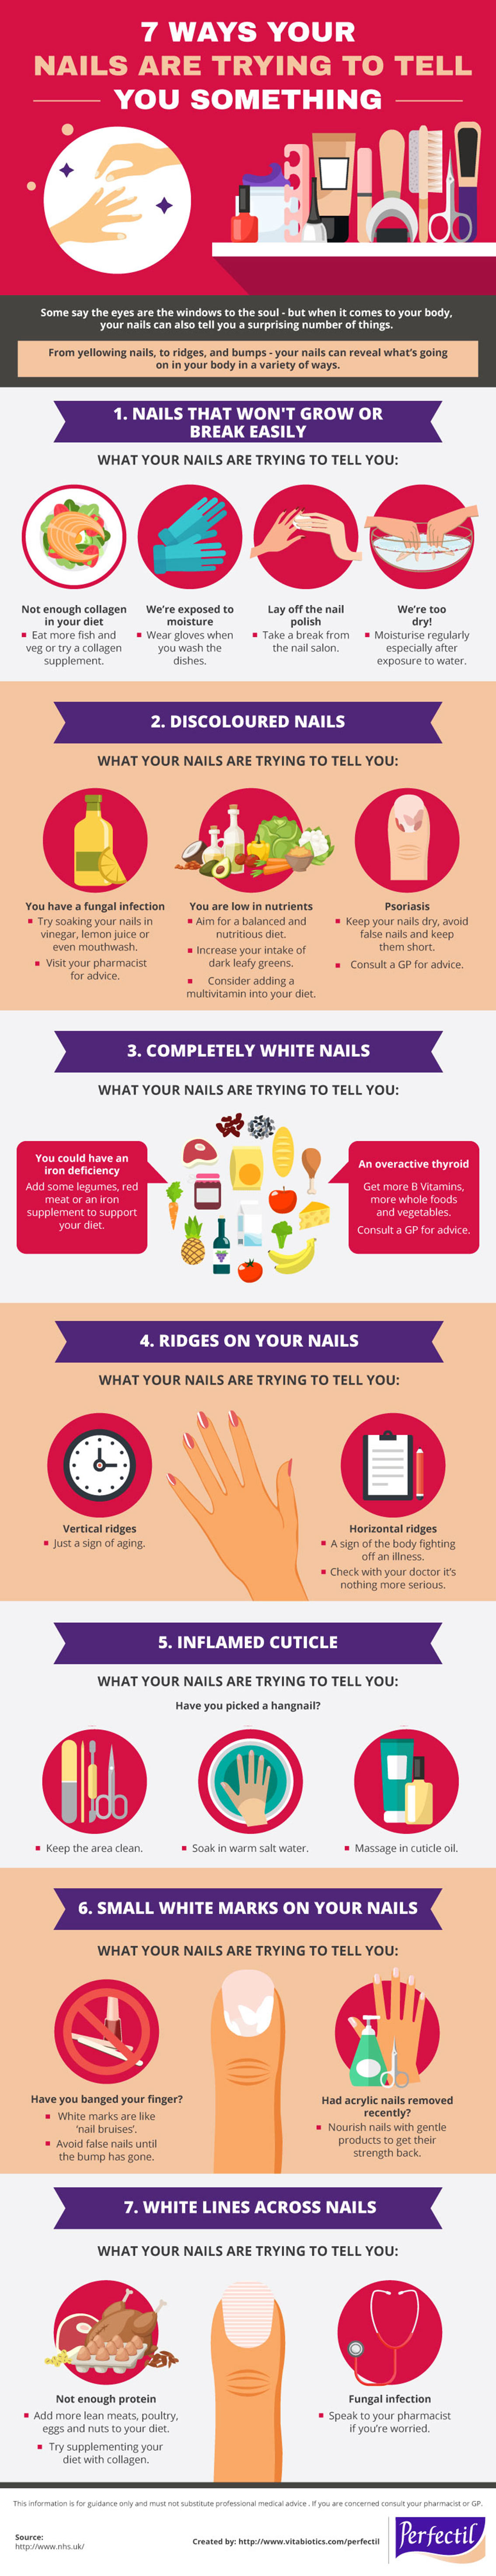 7 Common Nail Problems and Solutions Infographic